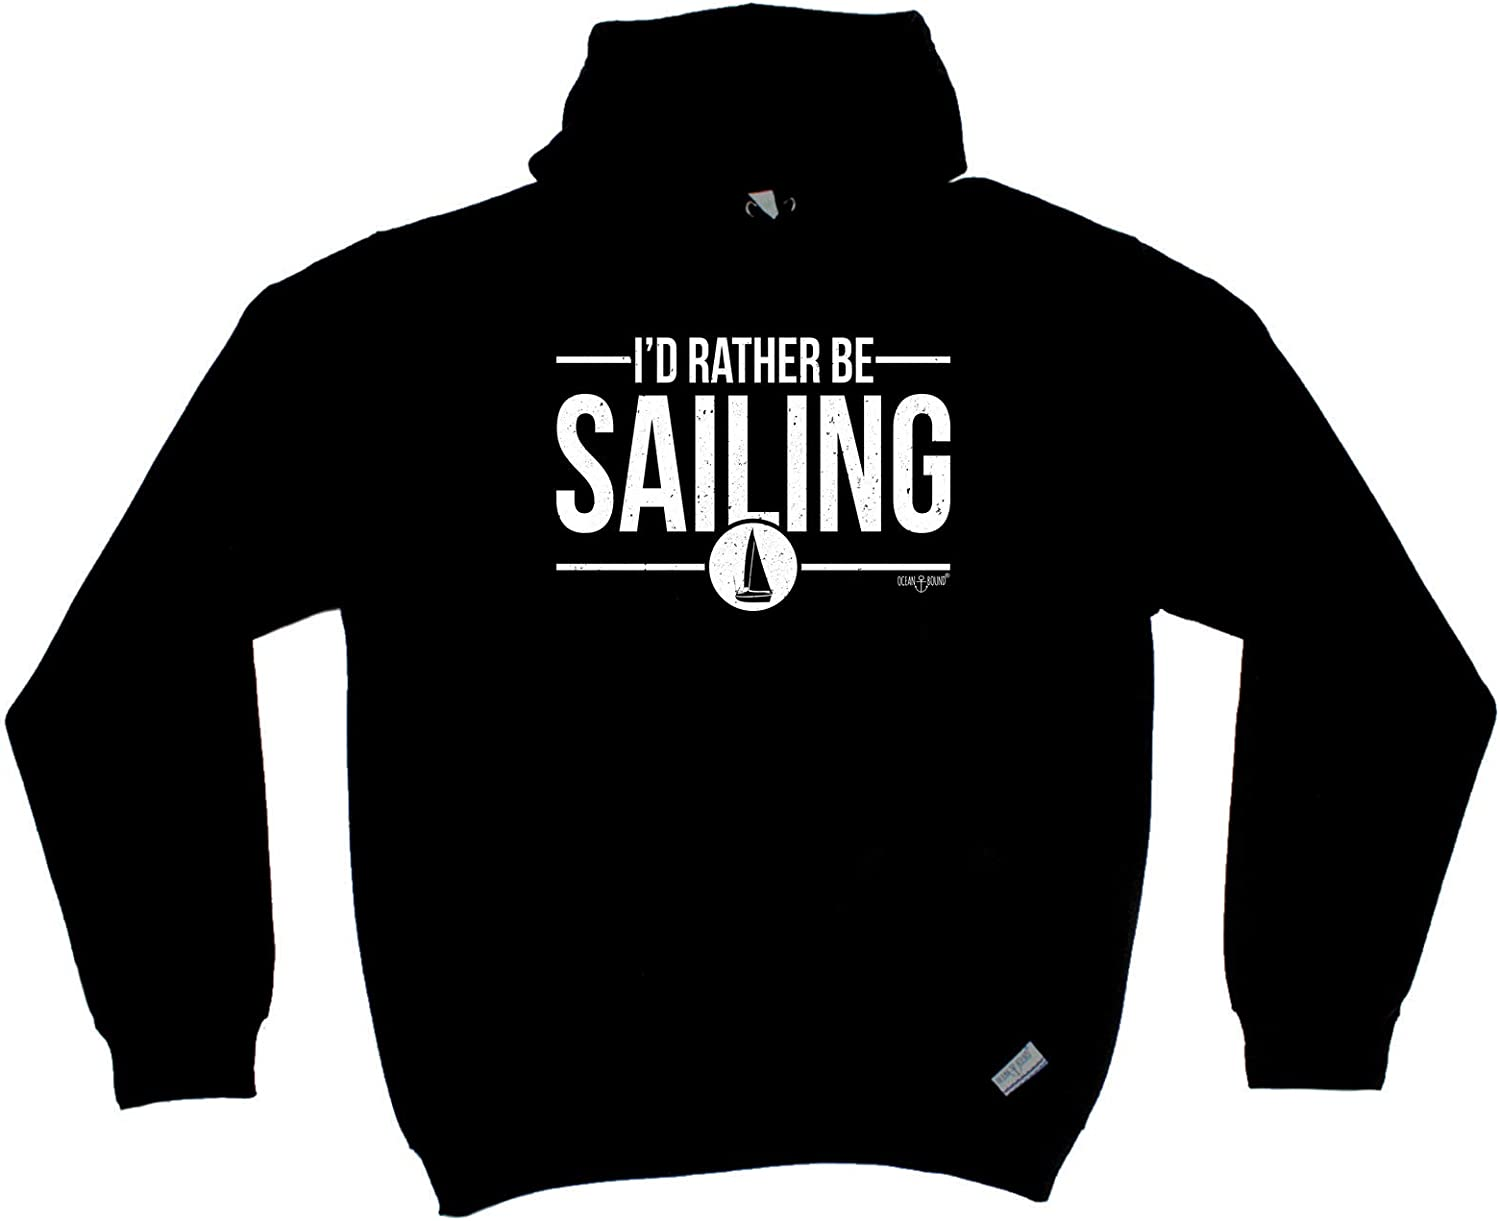 Sailing Sweatshirt Funny Novelty Jumper Top Pulse Anchor